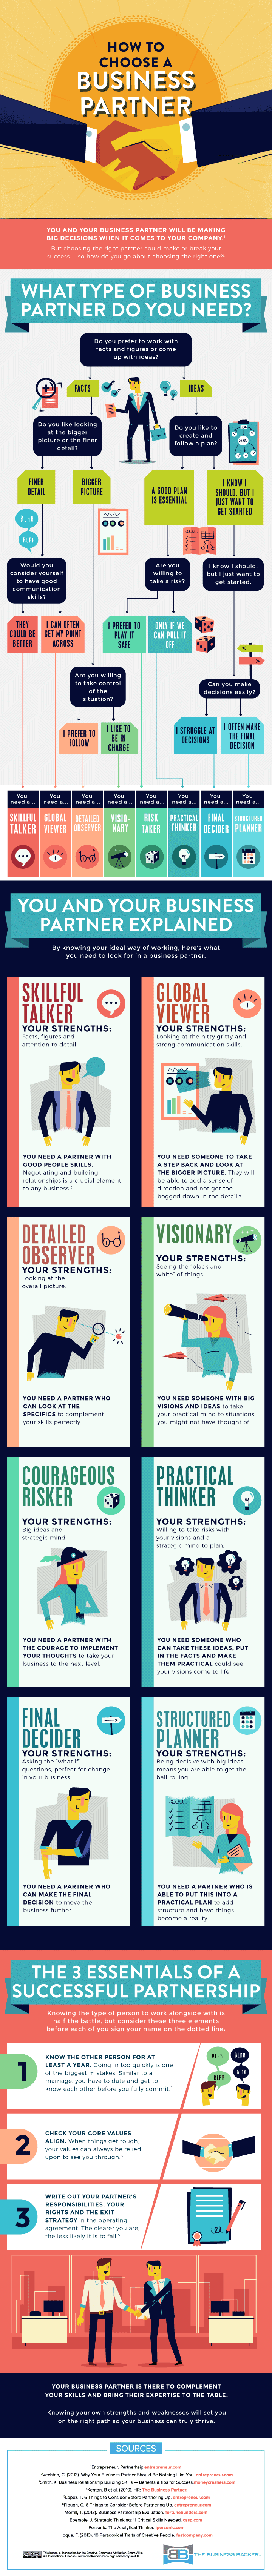 How To Choose a Business Partner #infographic